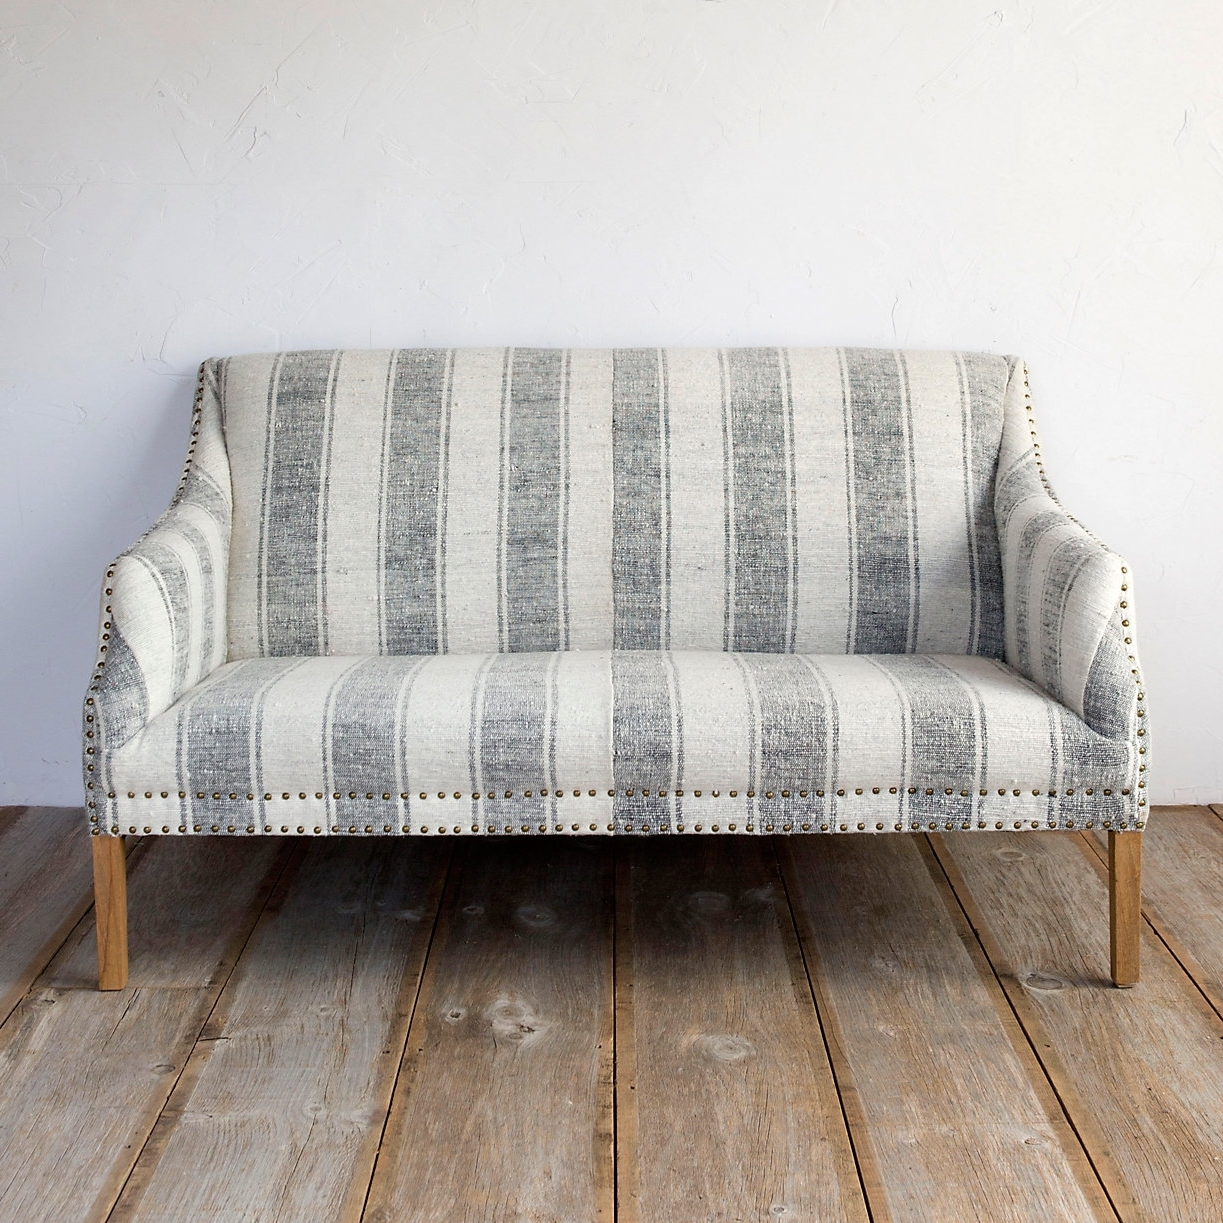 Famous Shabby Chic Decor For Sale Shabby Chic Used Furniture Shabby Chic Throughout Shabby Chic Sofas (View 1 of 15)